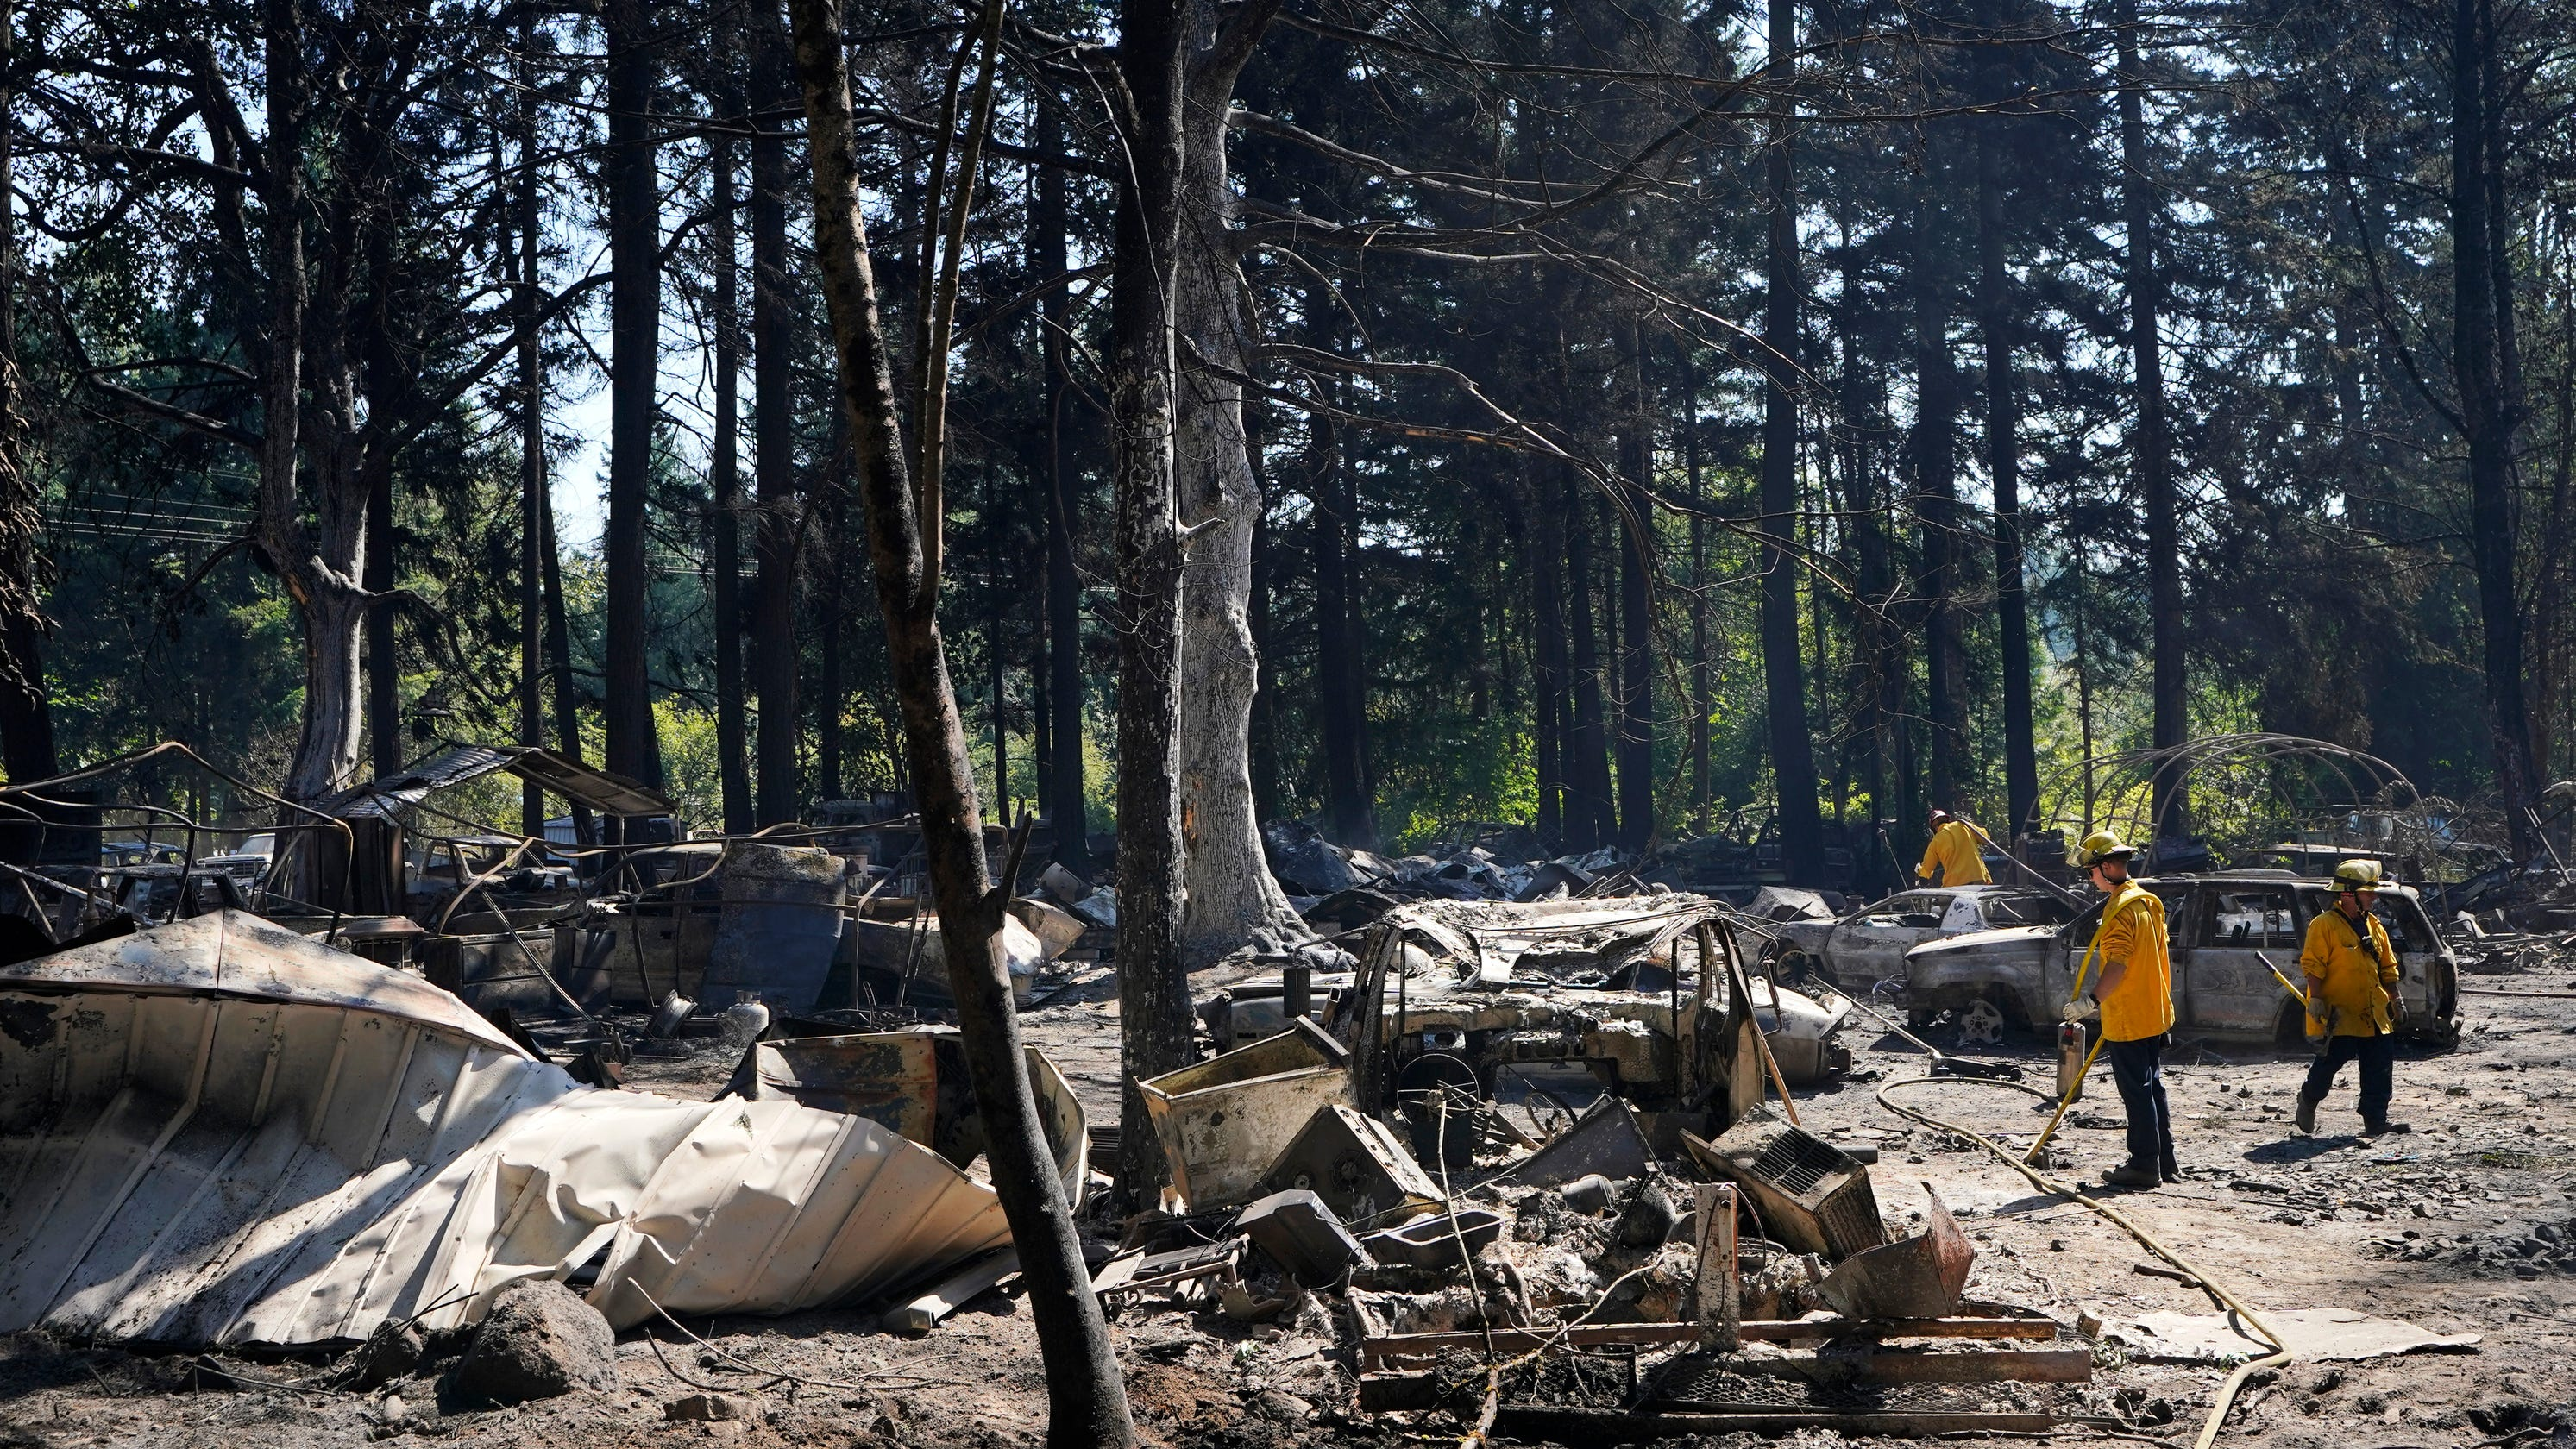 Northwest's new wildfire danger: 'It could happen anywhere in Kitsap'